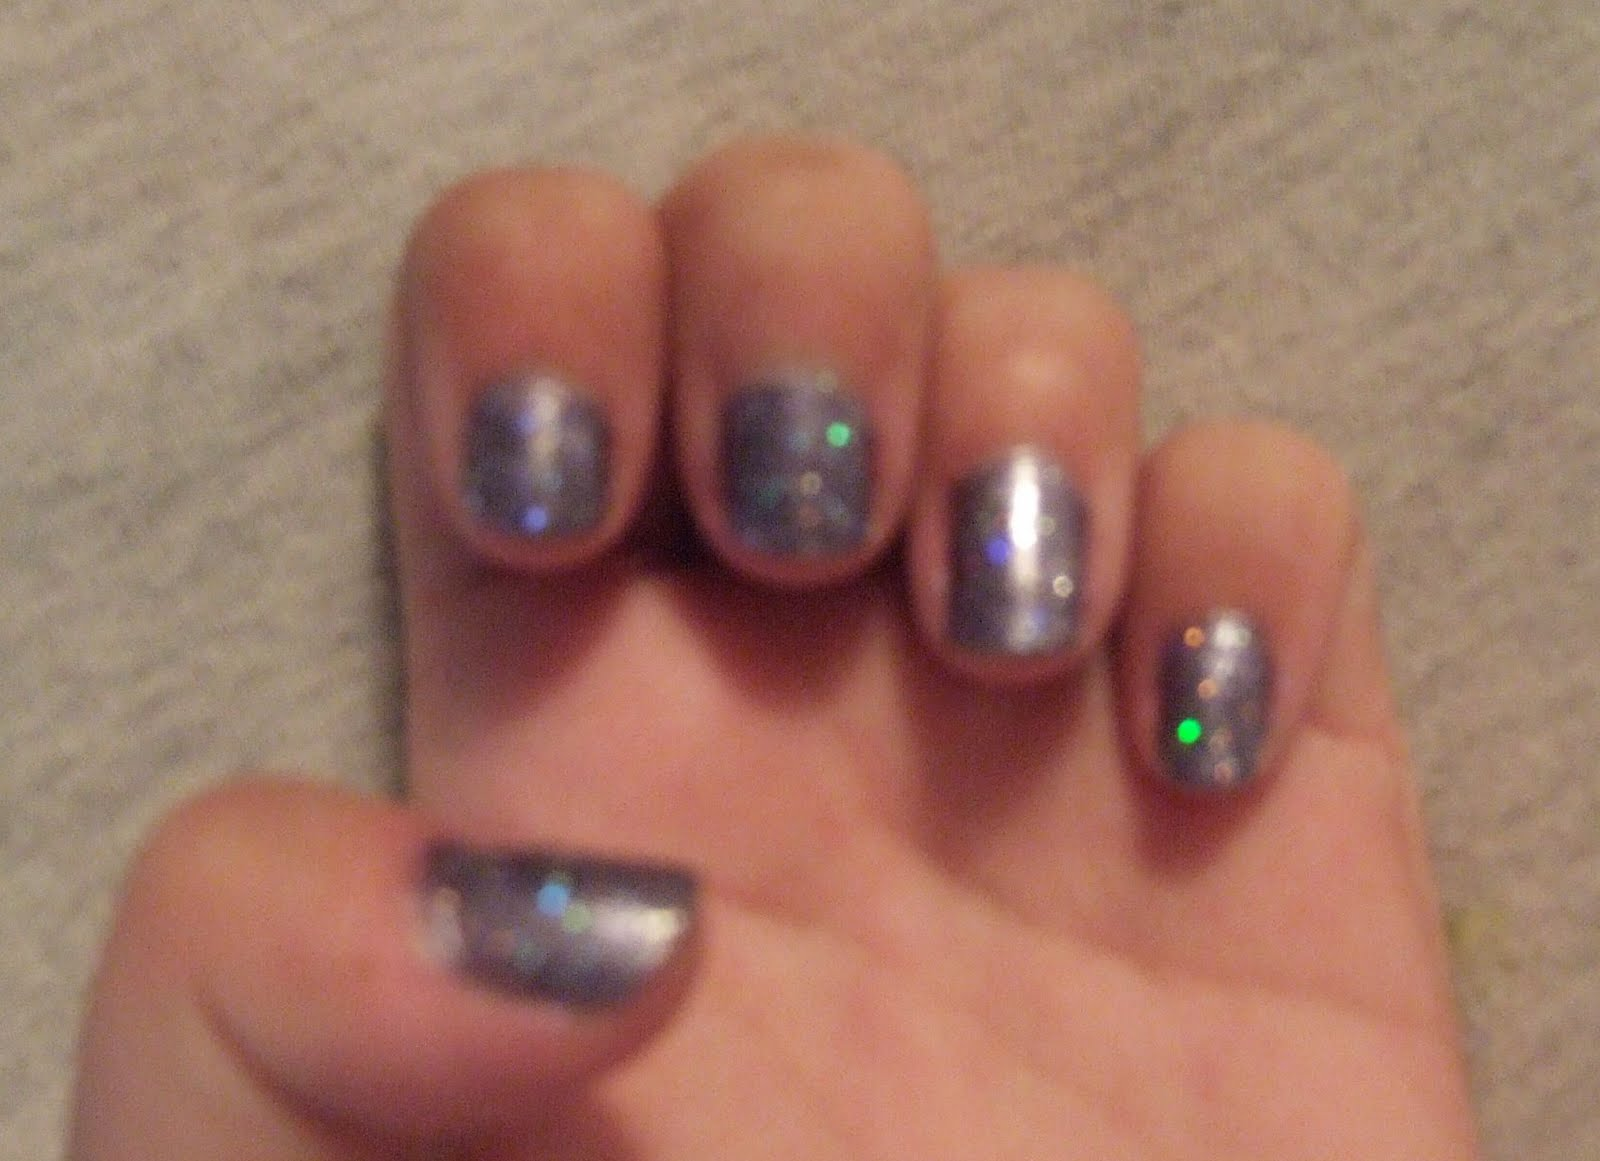 Shimmery Periwinkle Nails